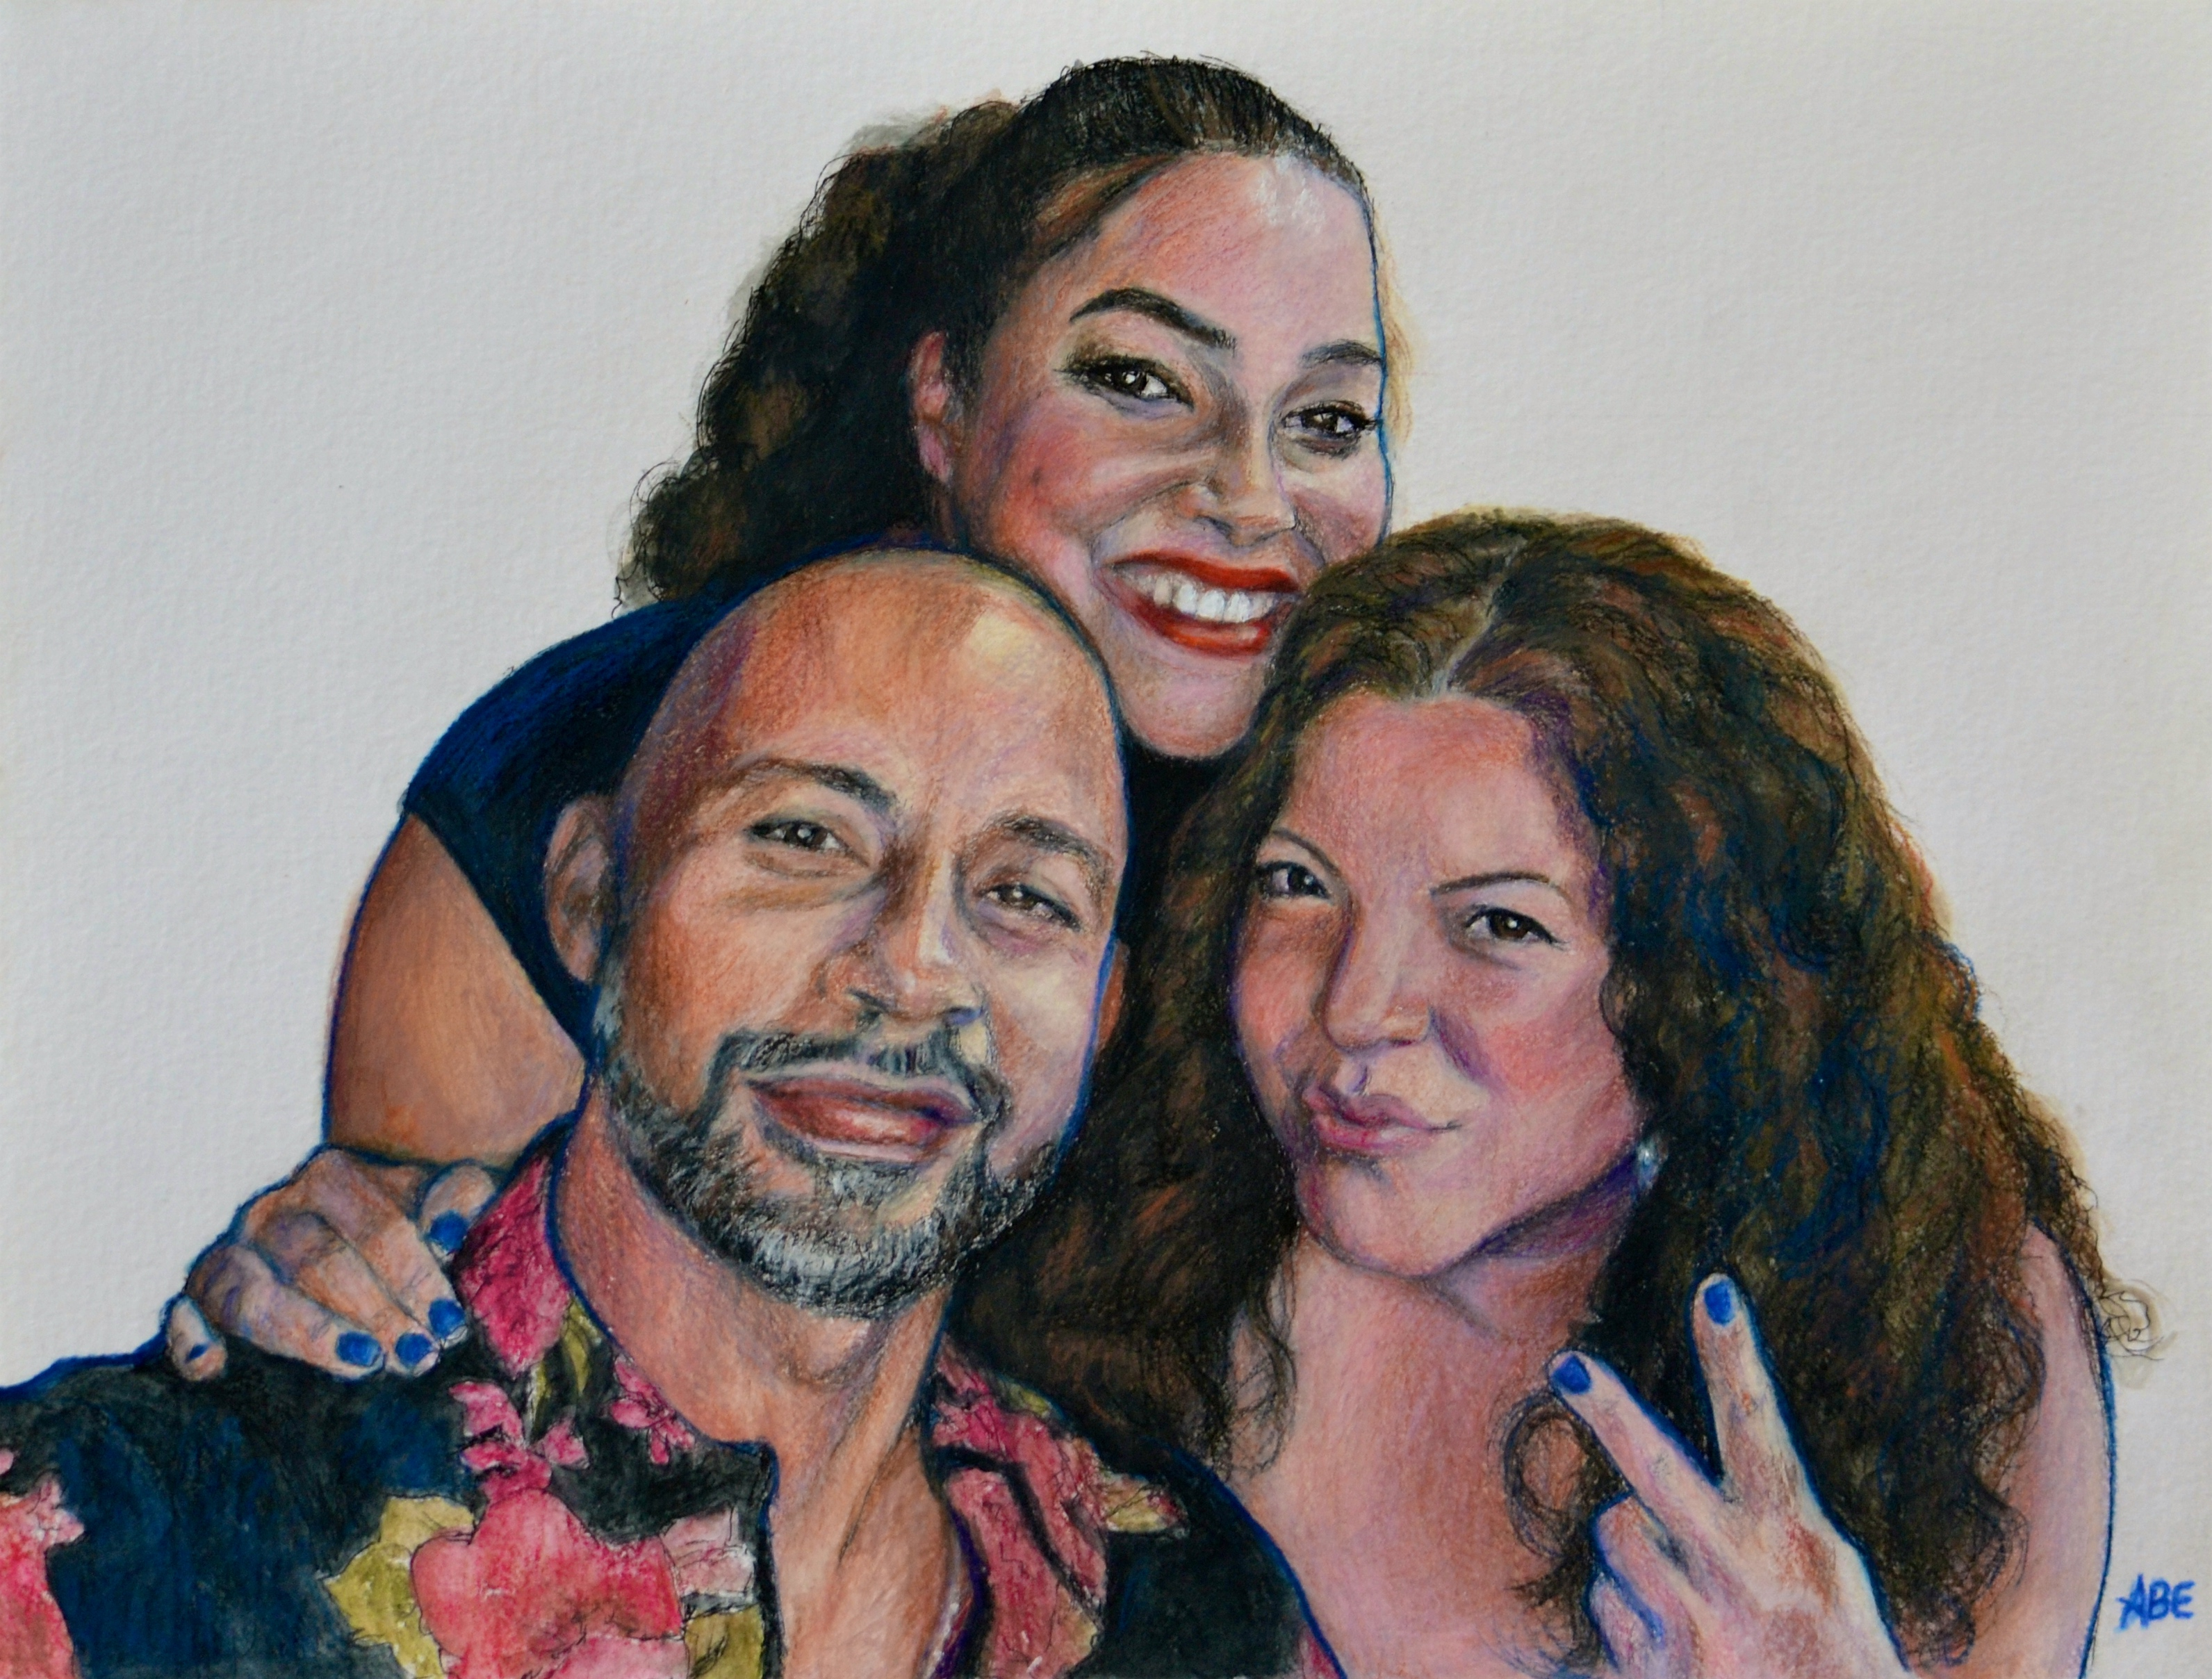 Ari and Friends commissioned portrait